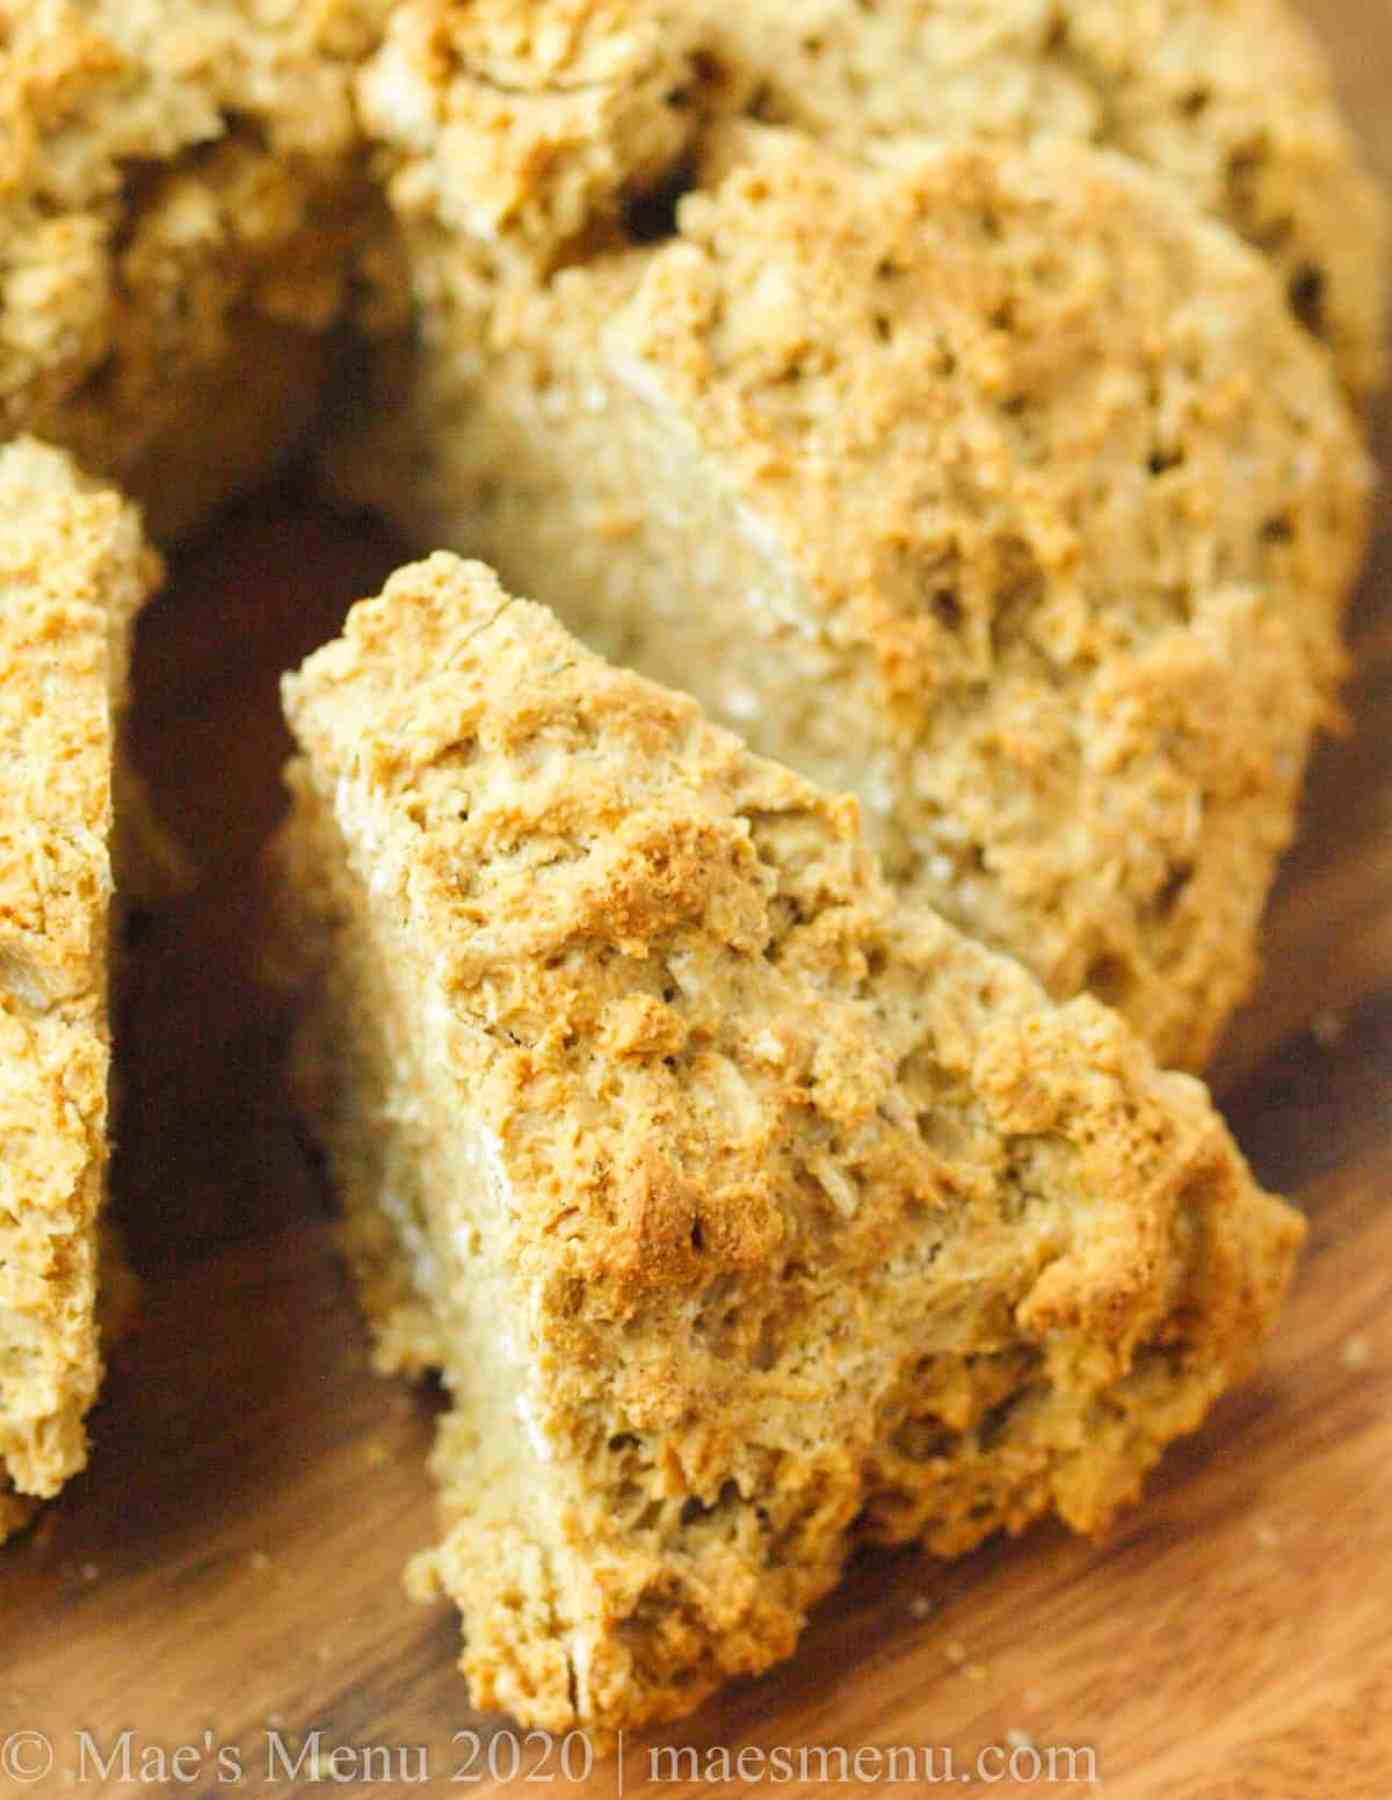 Upclose shot of a slice of oatmeal bread.